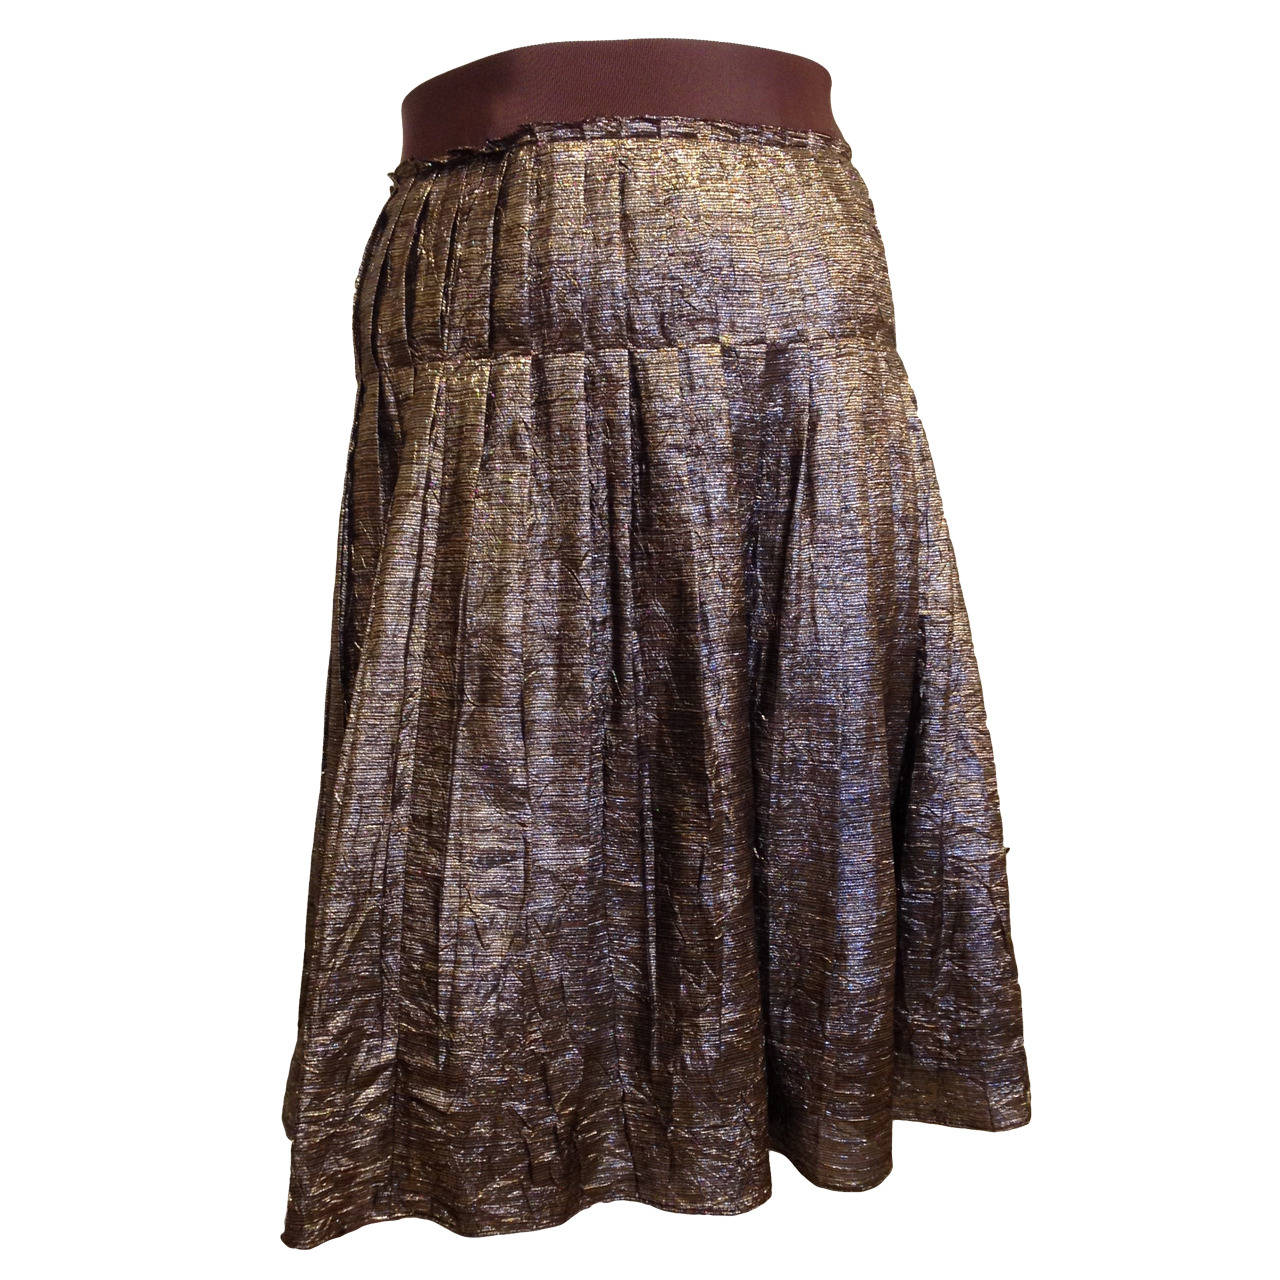 Lanvin Bronze Glittery Pleated Skirt 1